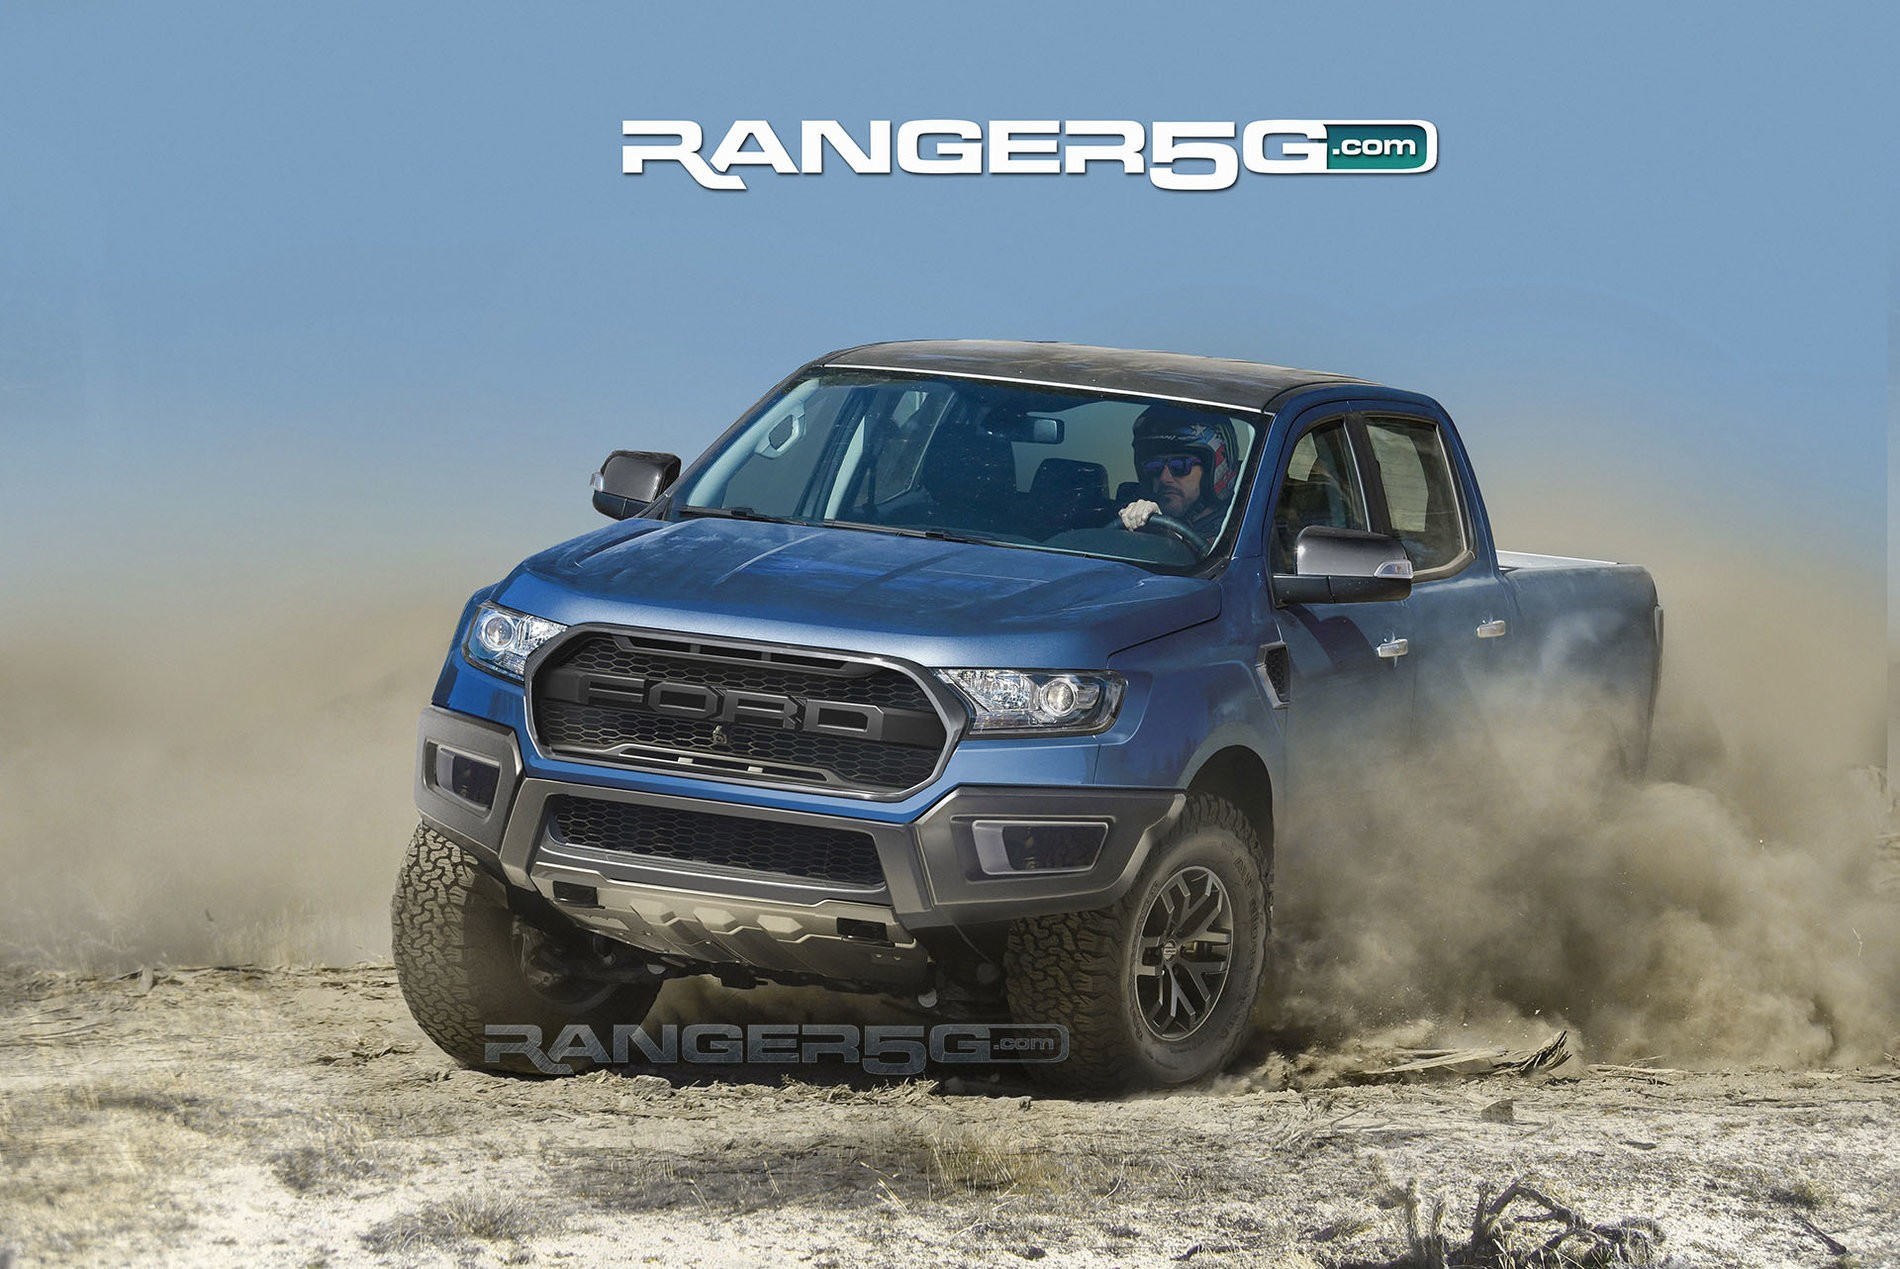 2019 Ford Ranger Raptor Rendered Based on Teaser Video, Looks Spot On - autoevolution